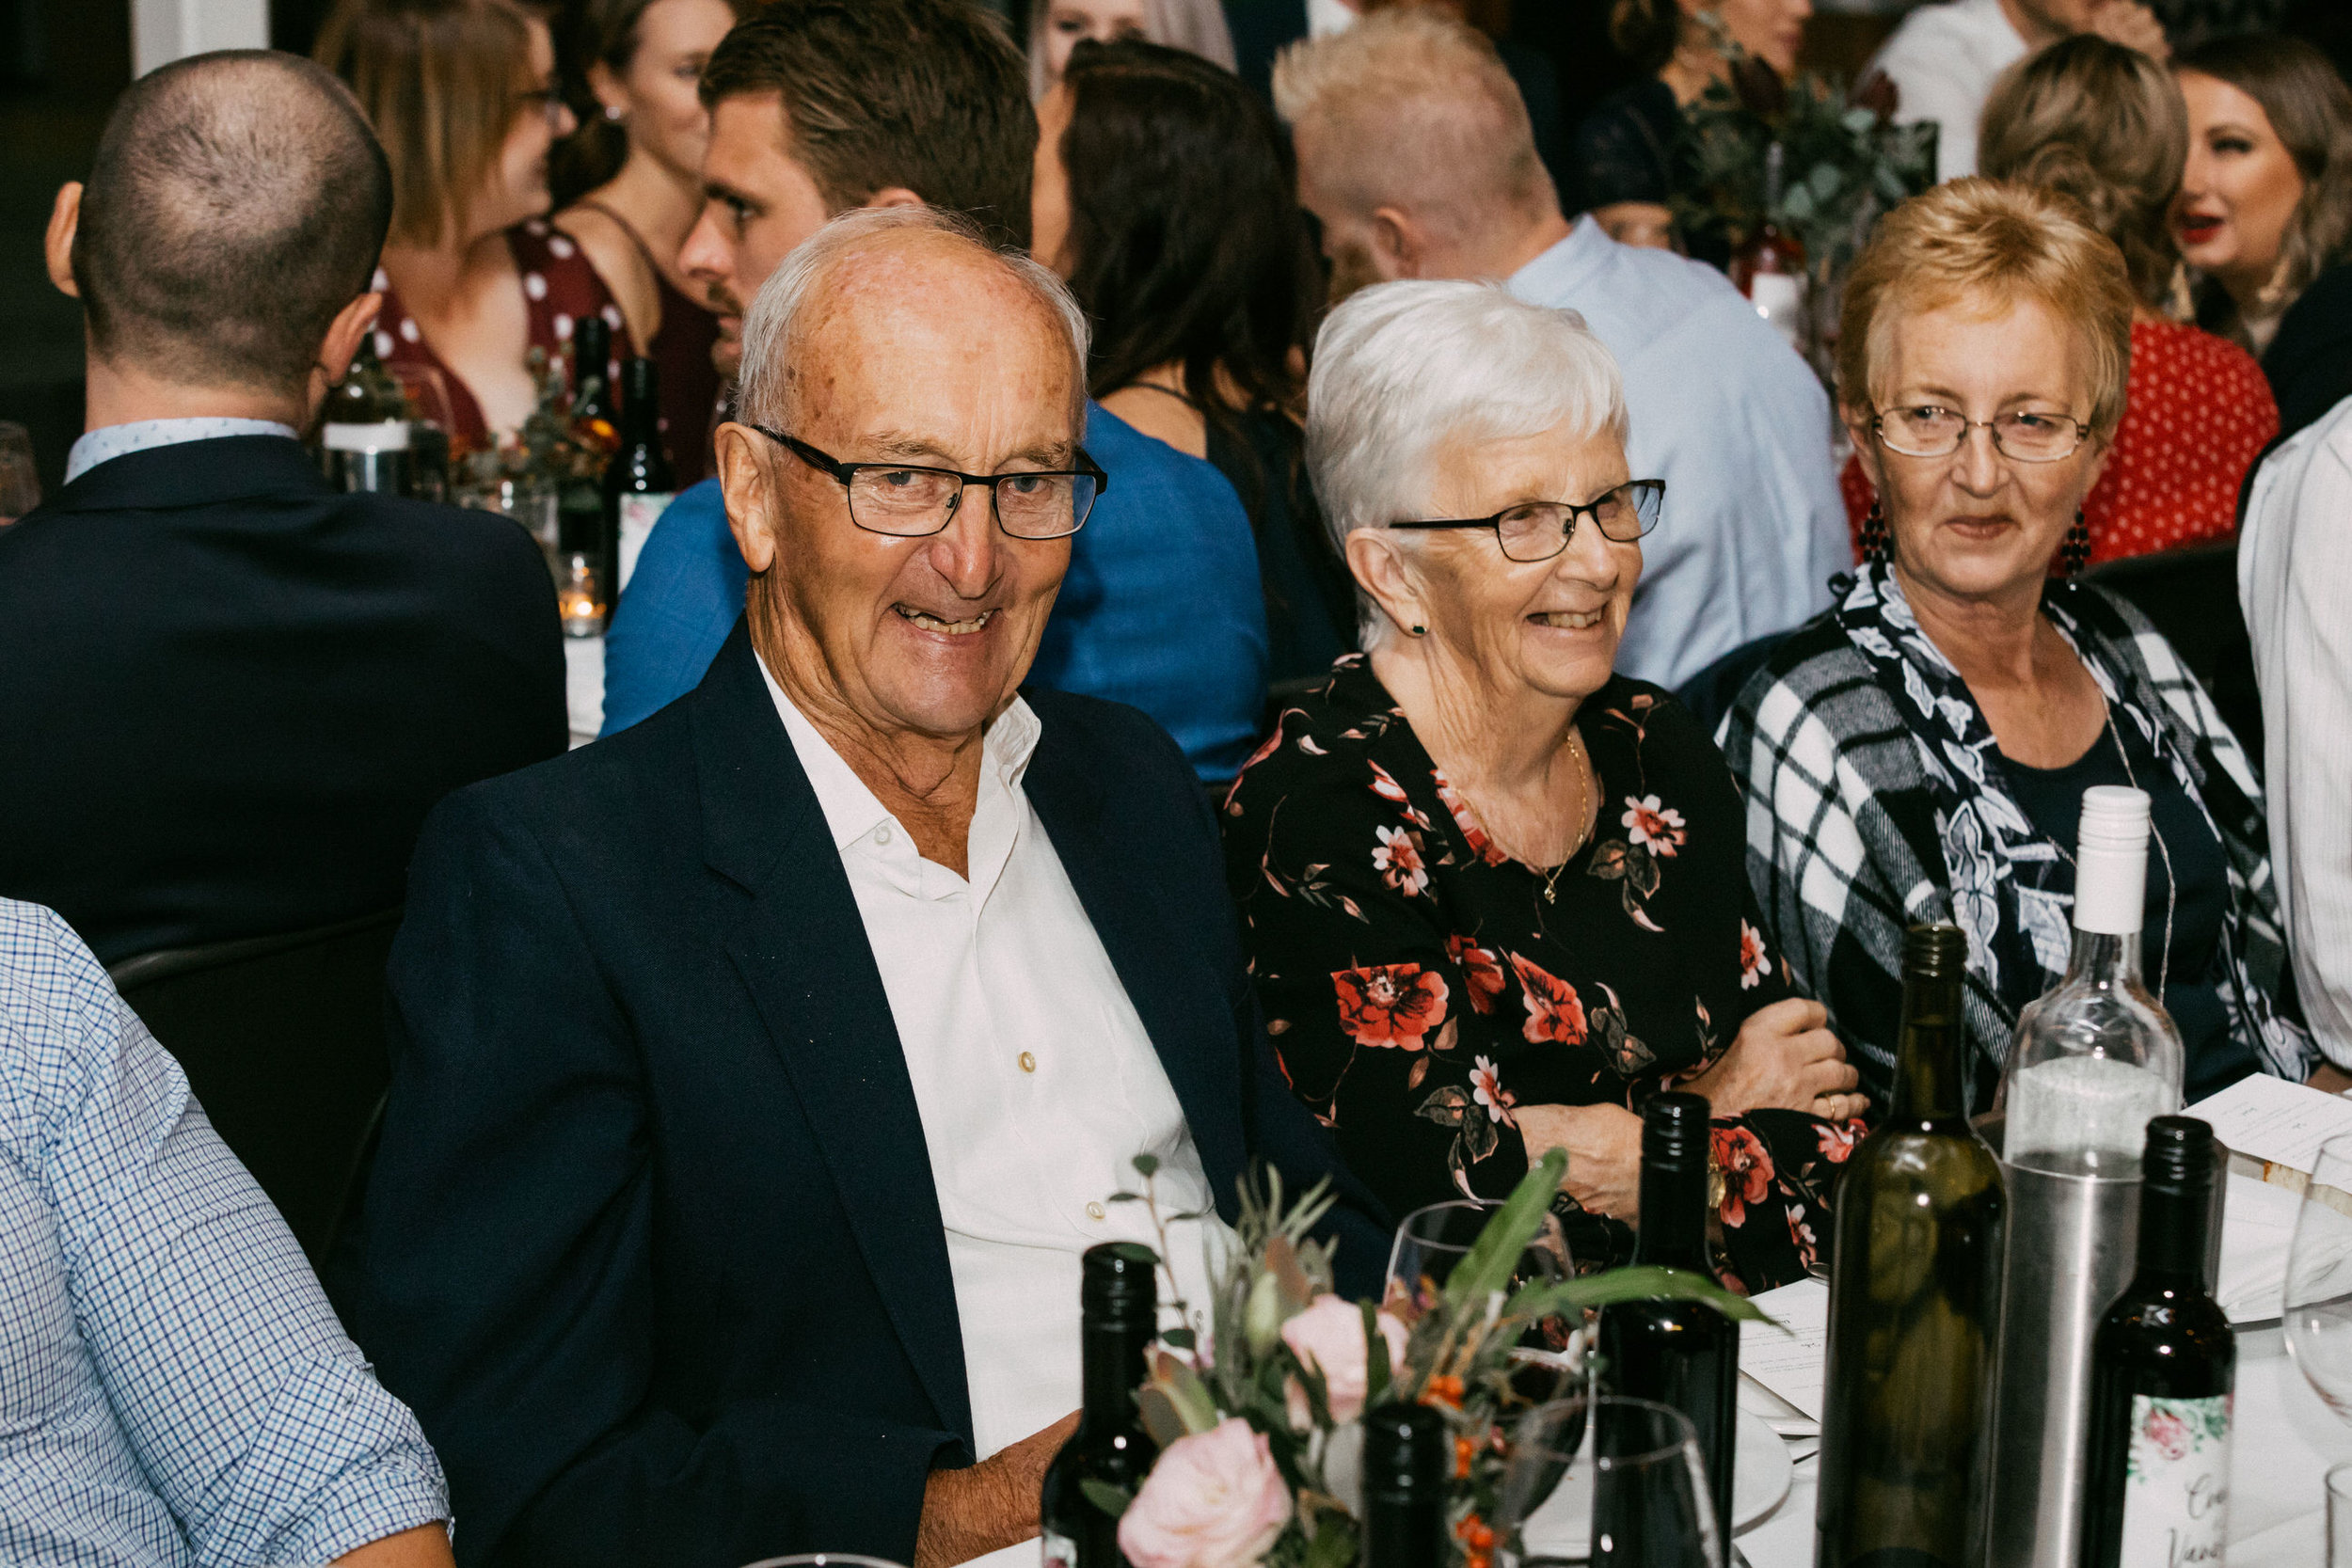 Ekhidna Wines McLaren Vale Wedding 126.jpg